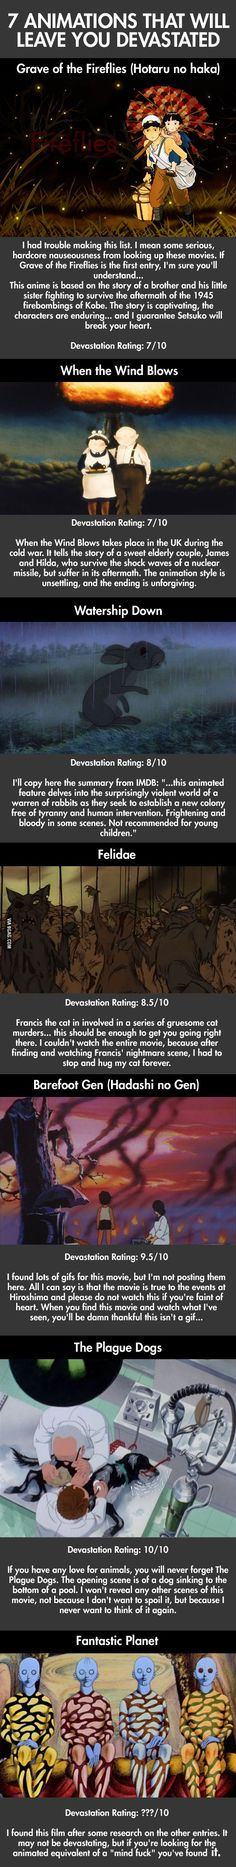 Animated films that will leave you devastated